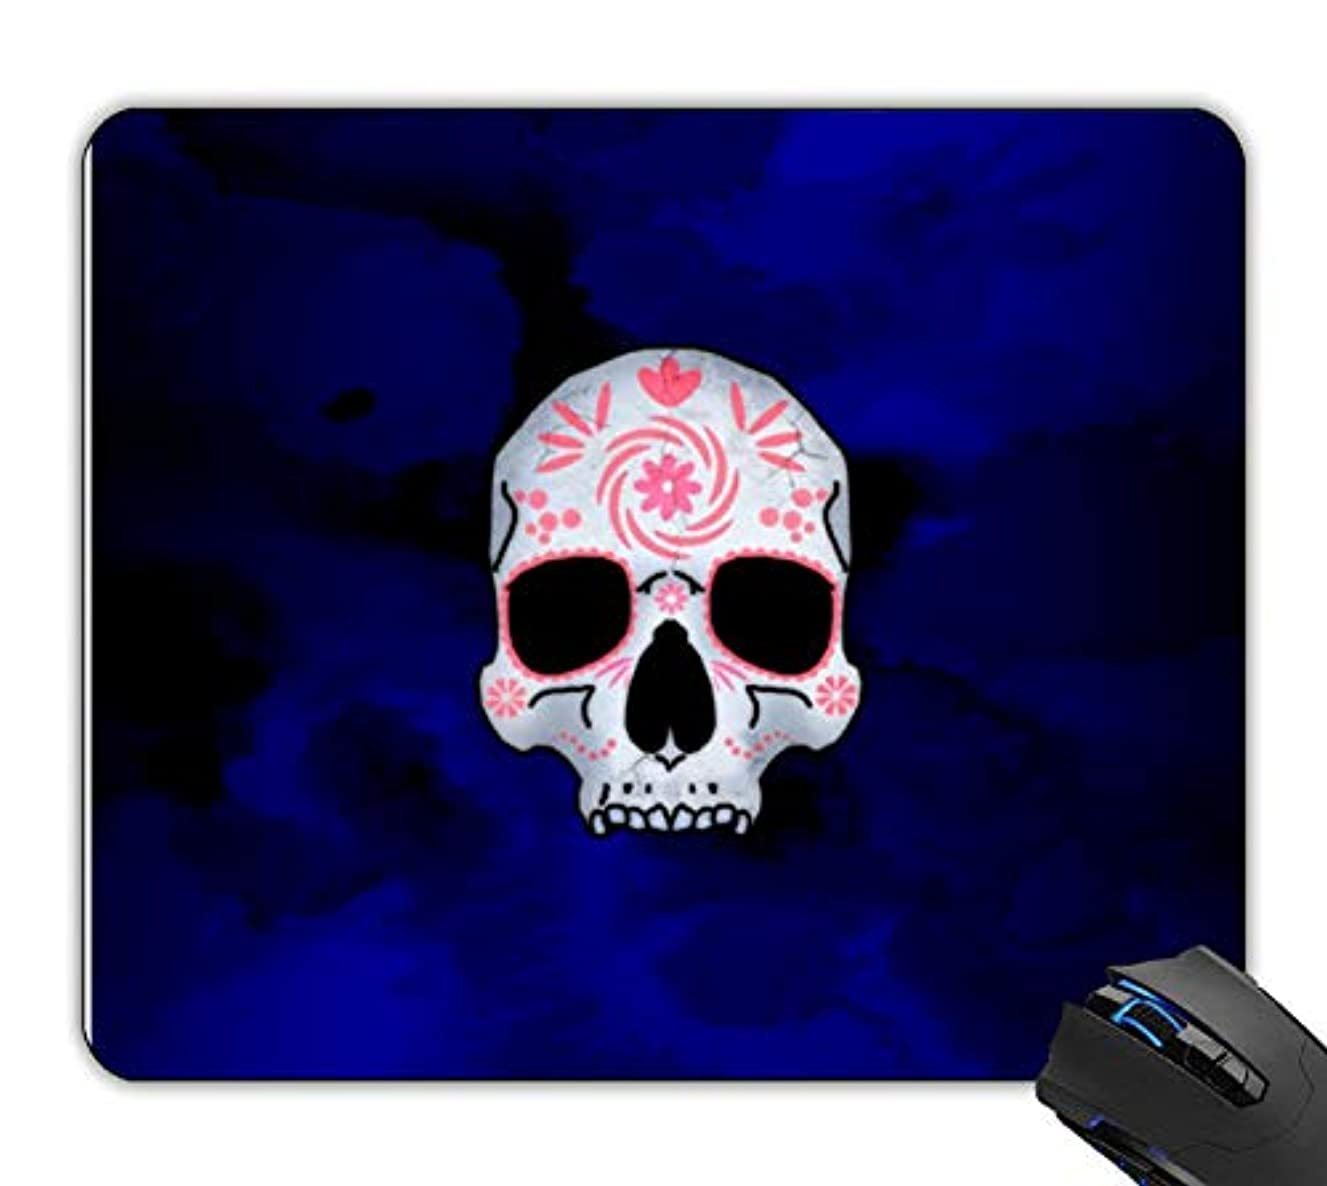 OTTIET Custom Pink Decorated Skull Gaming Mouse Pad 9.5 X 7.9 Inch (240mmX200mmX2mm).Non-Slip Thick Rubber Large Mousepad.